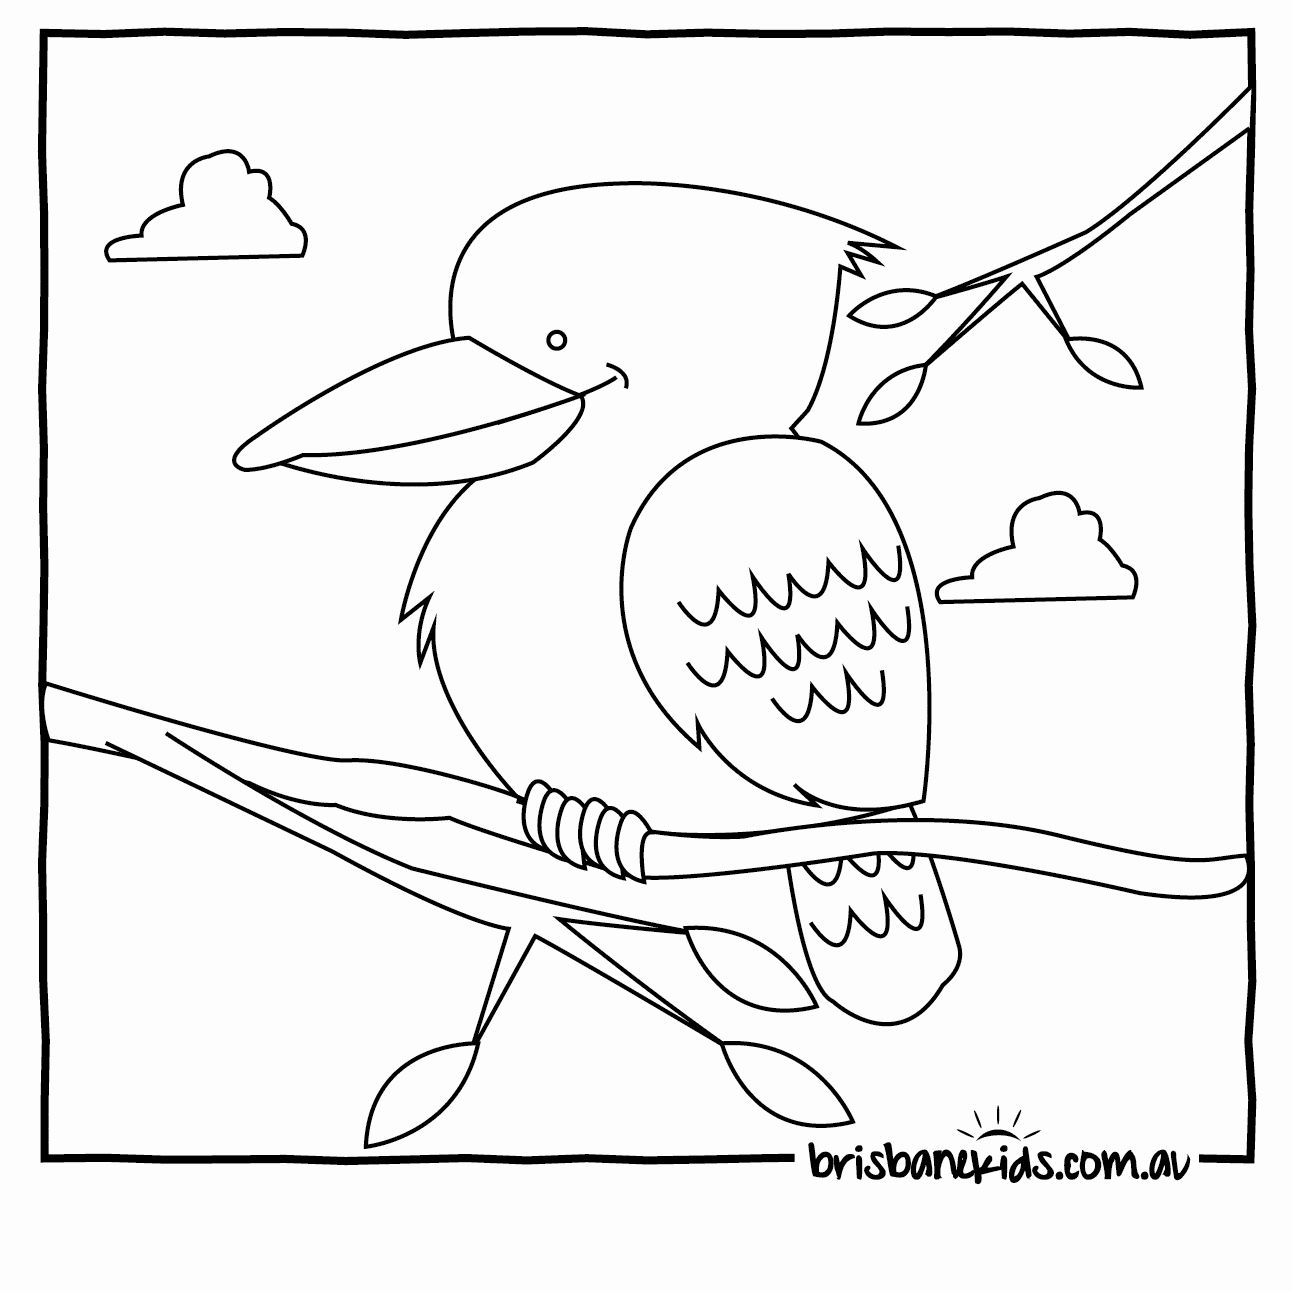 Australian Animals Coloring Pages Inspirational Australian Animals